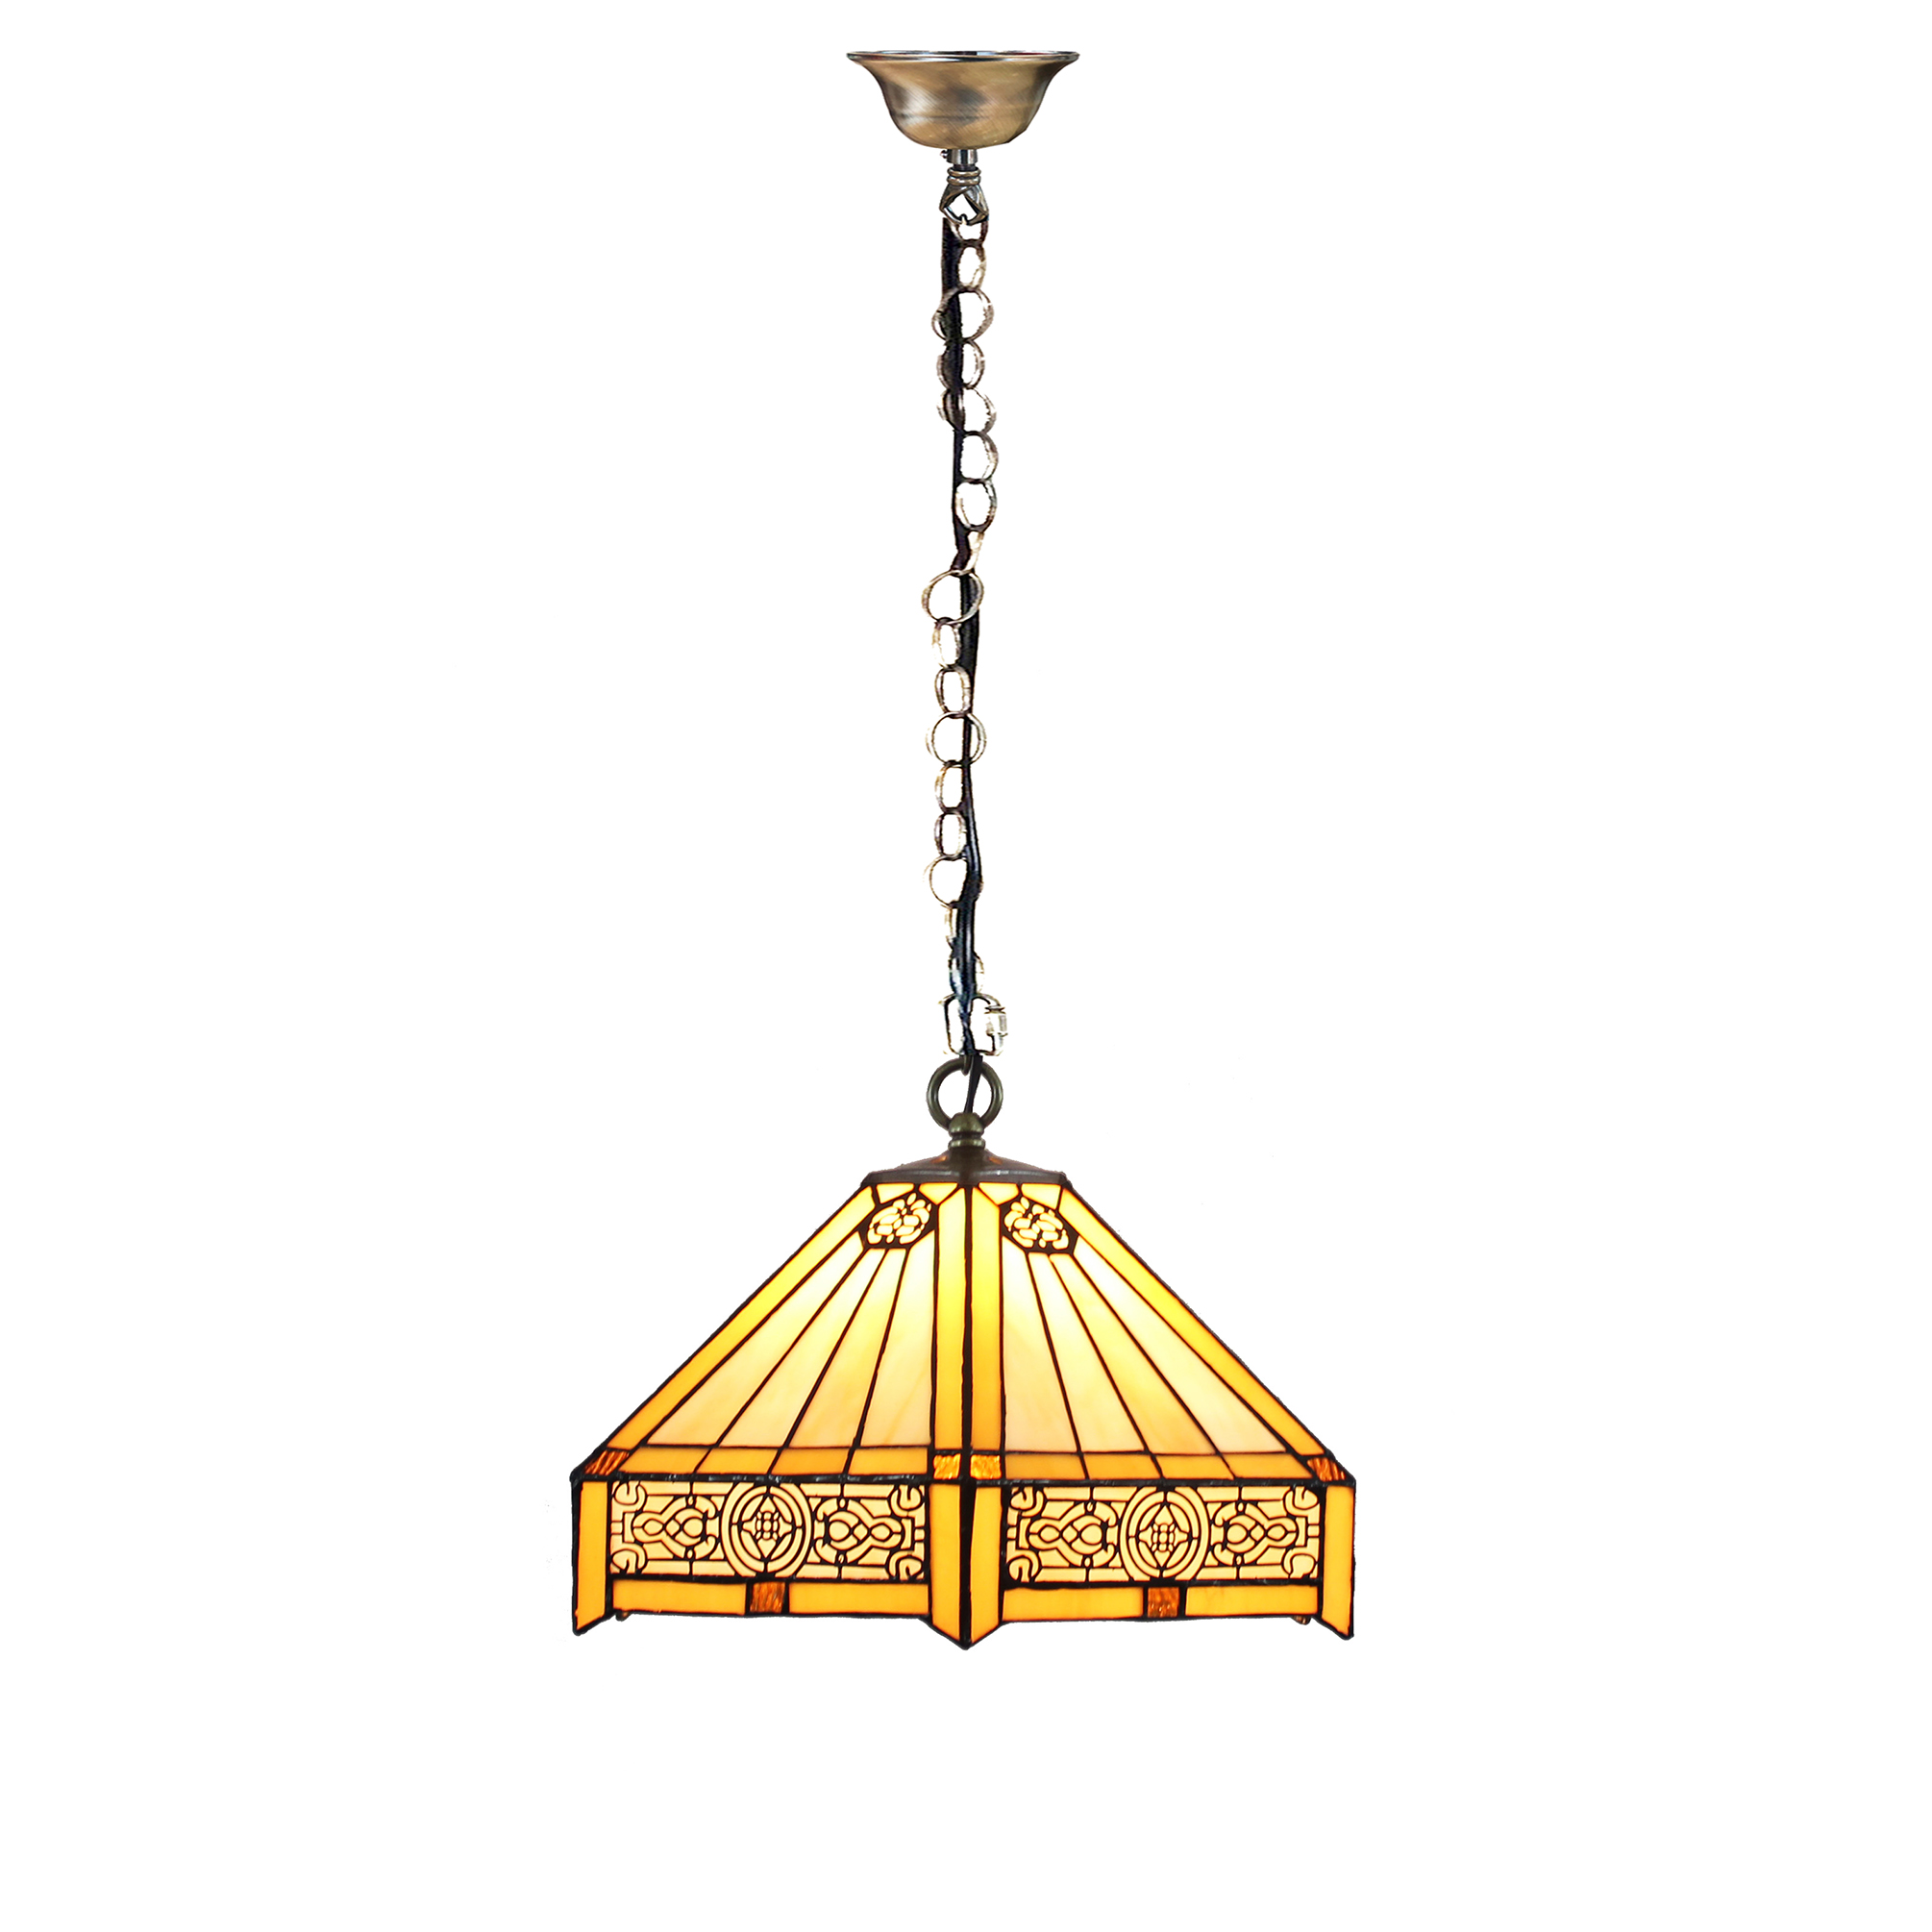 Hanging Bar Light Fixtures Tiffany Hanging Bar Light Stained Glass Island Lamp